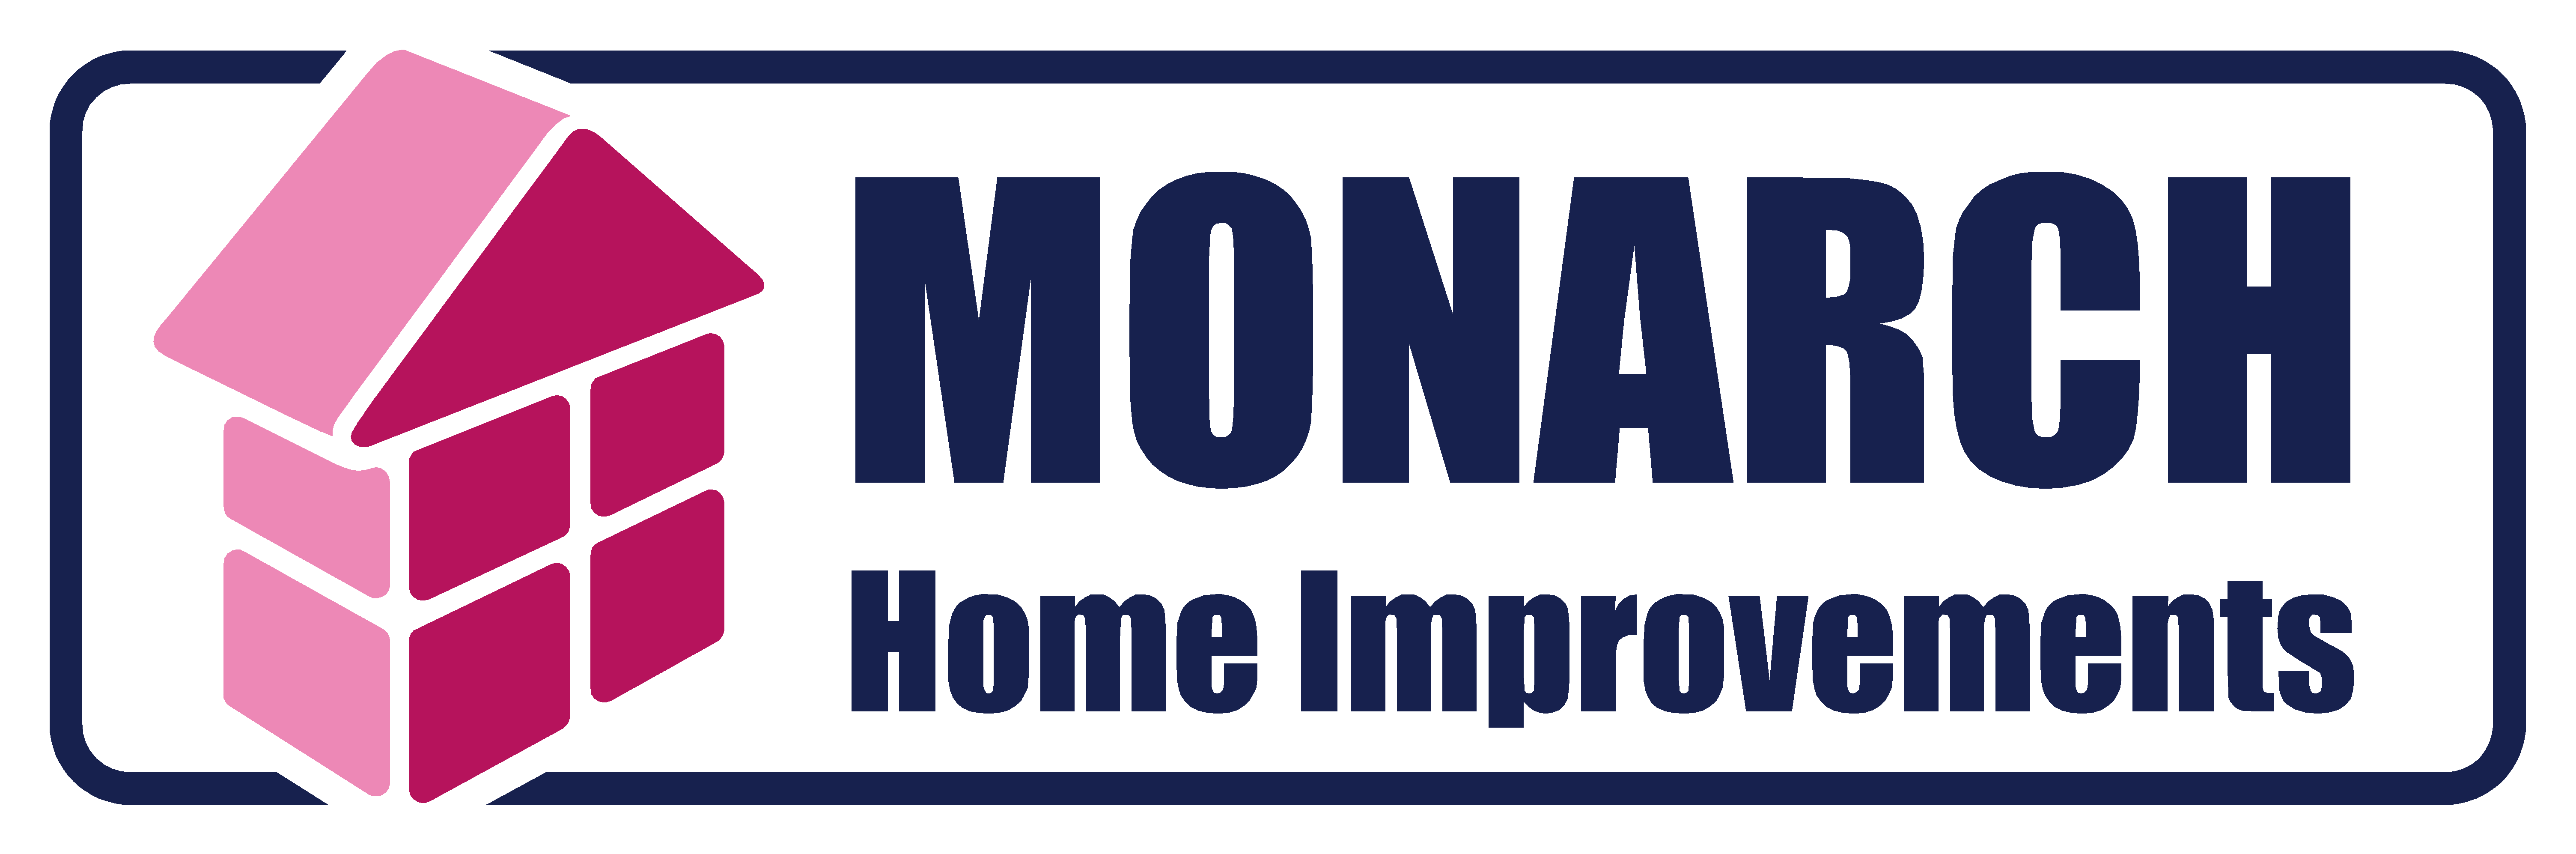 Monarch Home Improvements